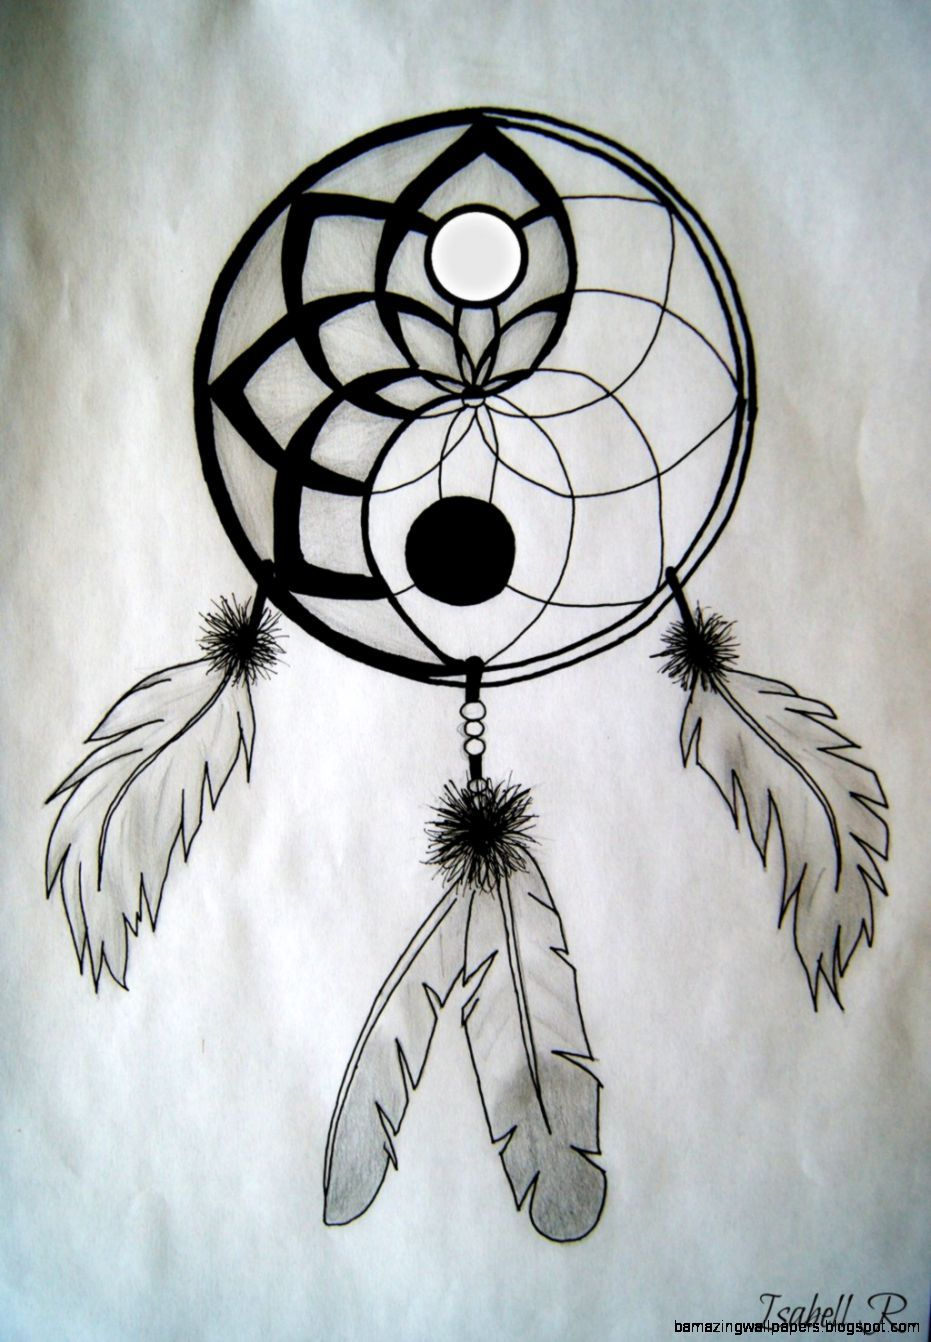 Tumblr iphone wallpaper yin yang - I Like The Whole Ying Yang Thing But The Way The Feathers Are Placed I M Not A Big Fan Of That Ying And Yang Dreamcatcher On Deviantart